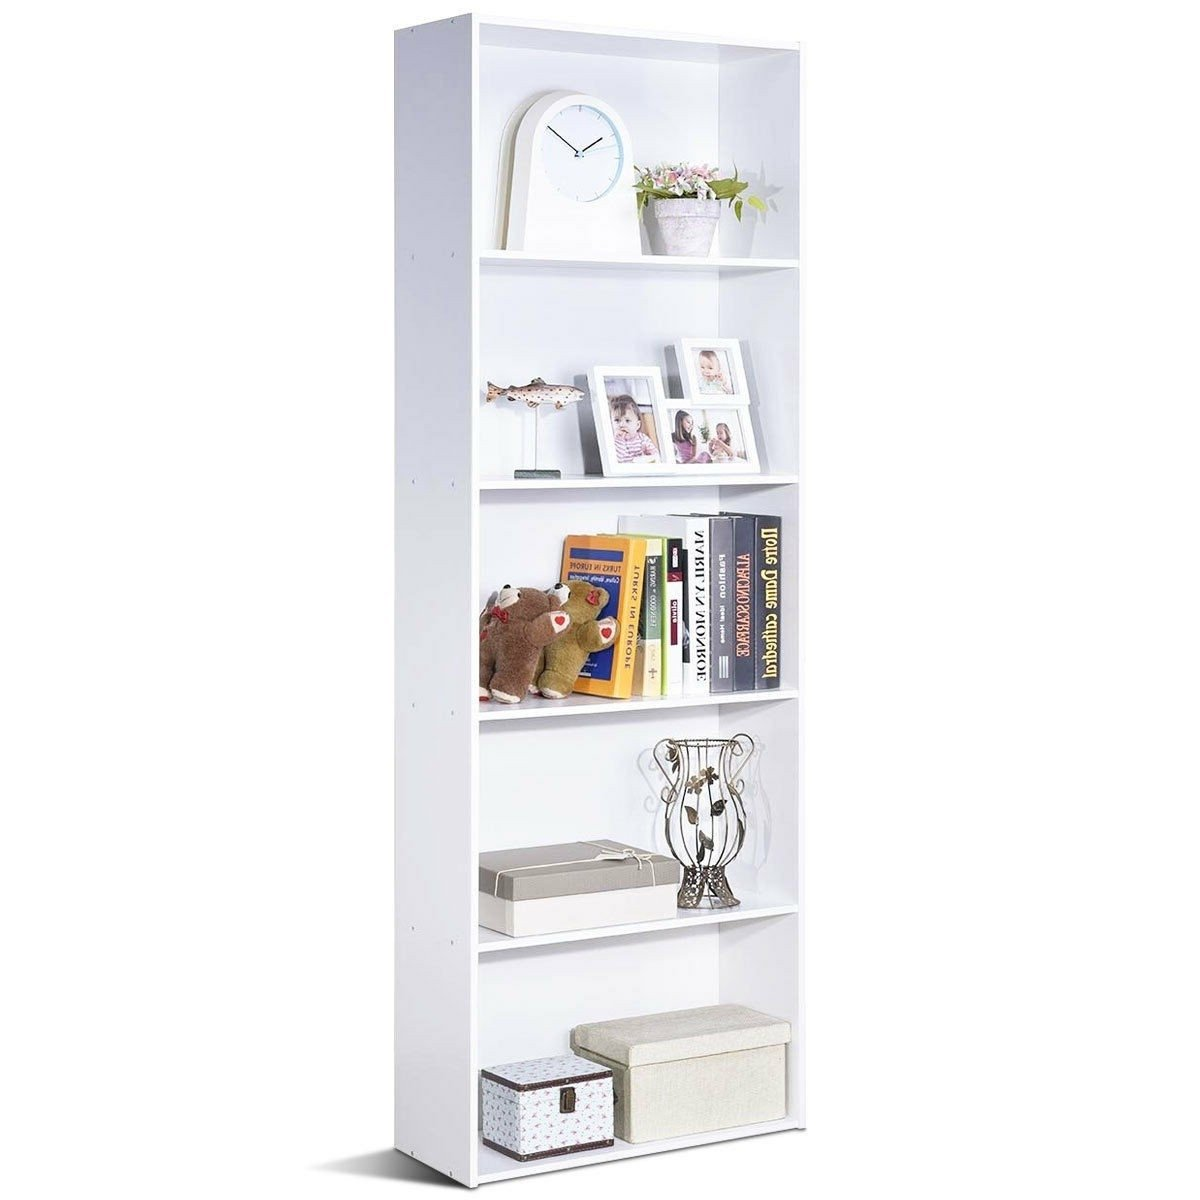 Modern 5-Tier Bookcase Storage Shelf in White Wood Finish